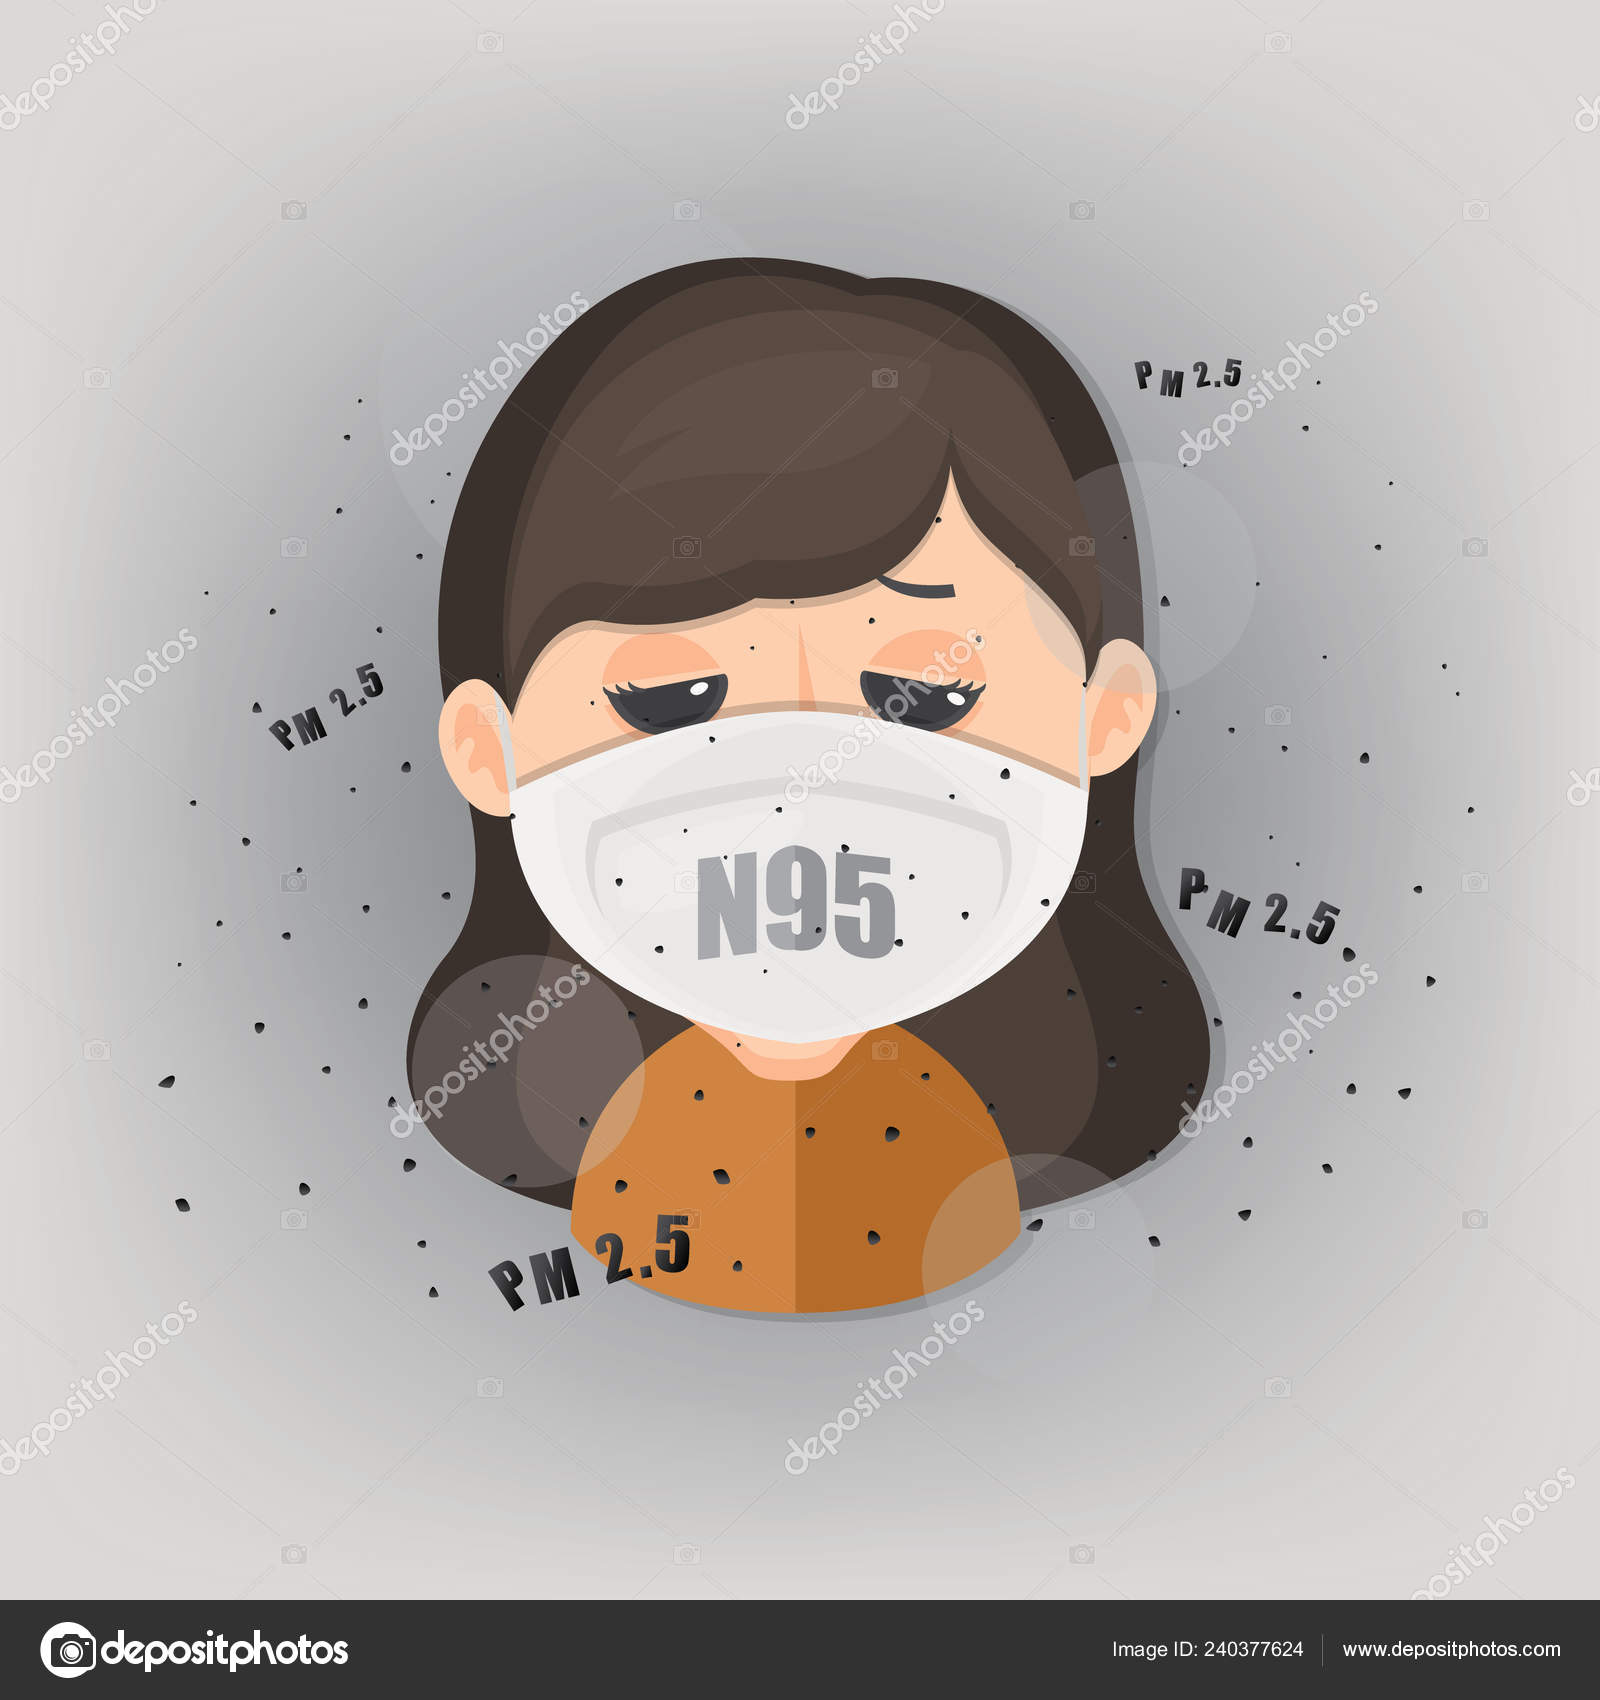 Meter Air Human Outdoor Dust Wearing Pollution Protect N95 Mask